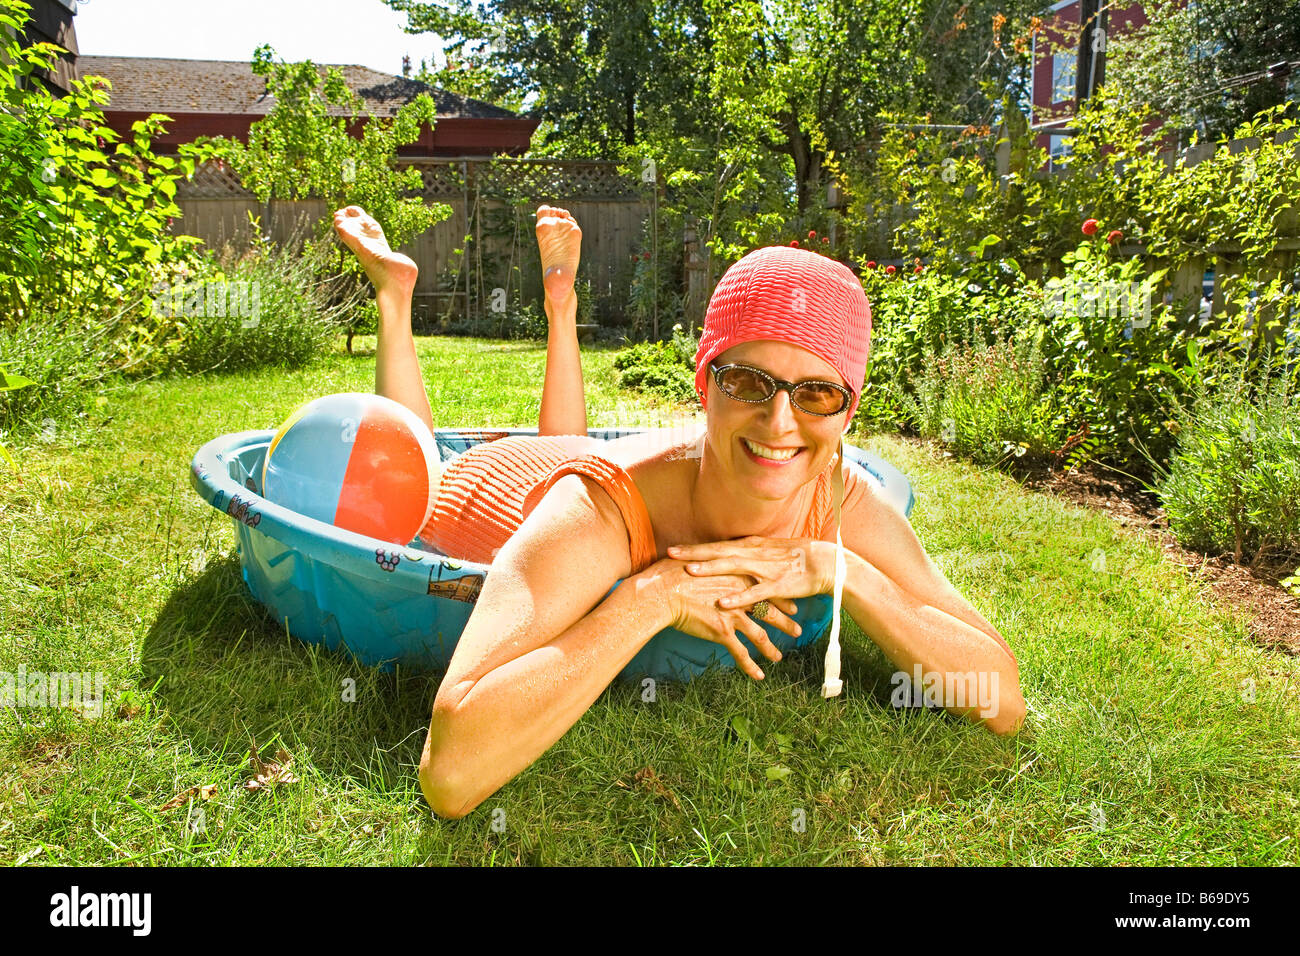 Woman lying in a wading pool and smiling - Stock Image